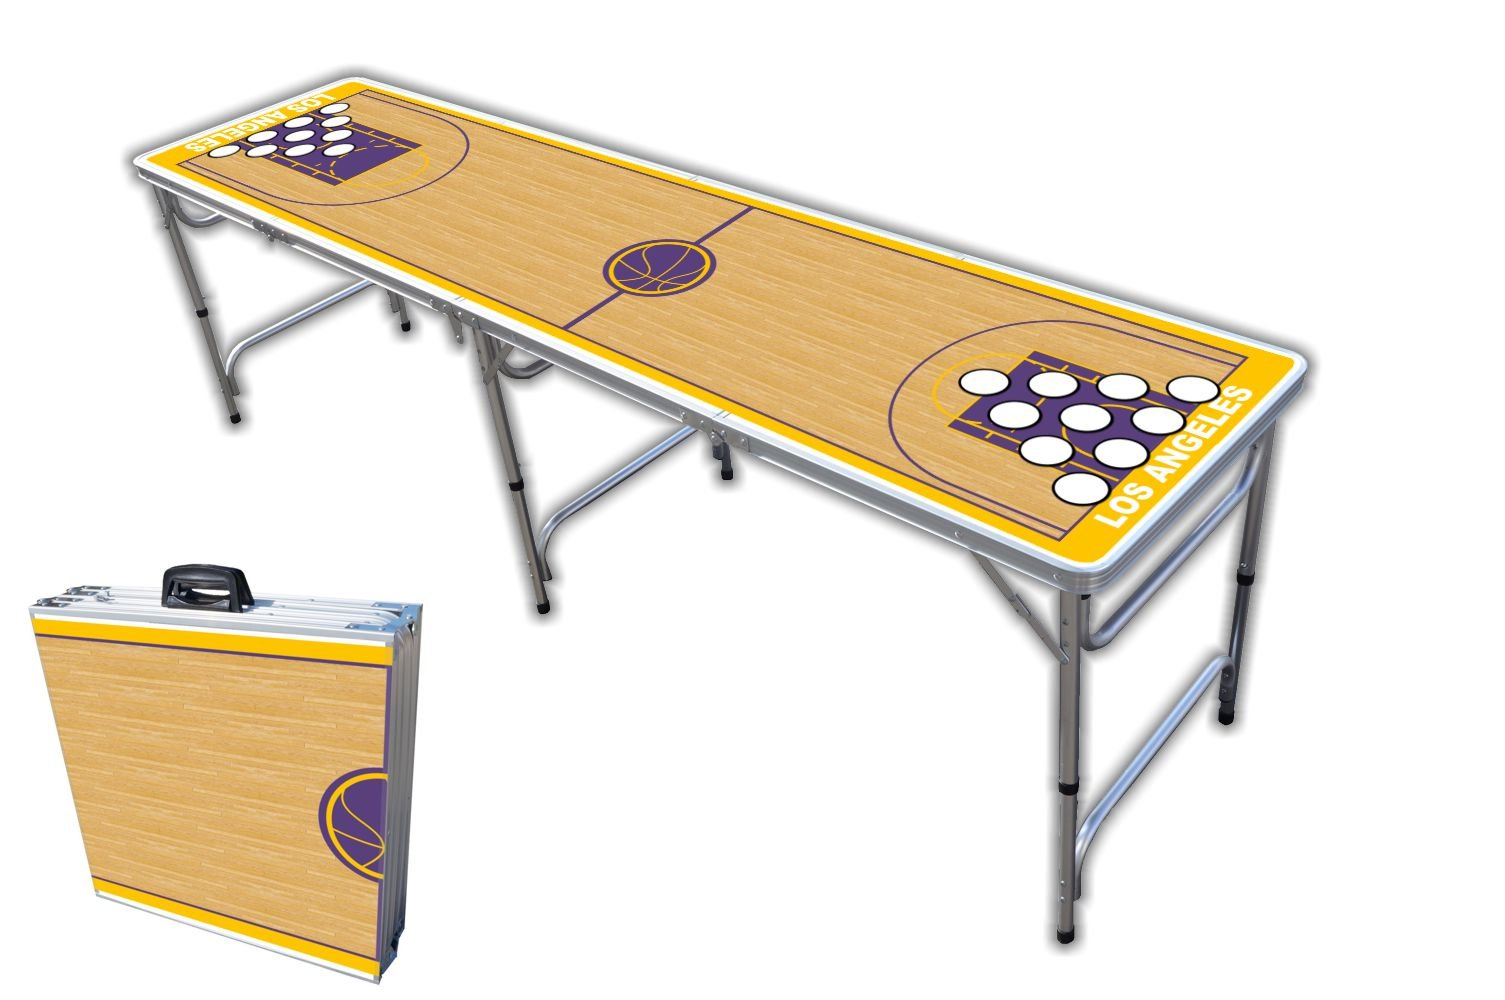 8-Foot Professional Beer Pong Table w/Holes - Los Angeles Basketball Court Graphic by PartyPongTables.com